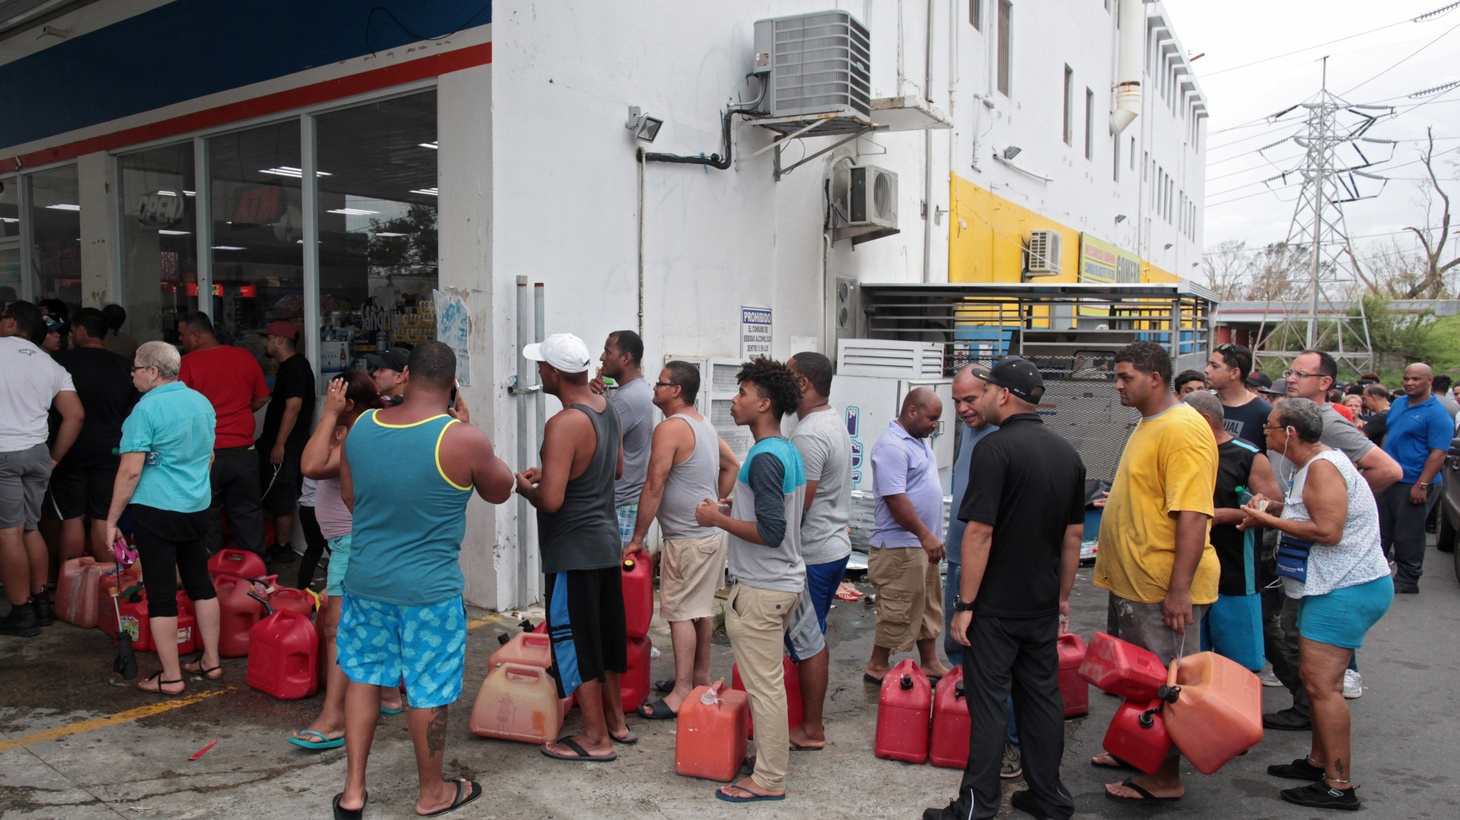 Hurricane Maria strafed Puerto Rico with winds up to 150 miles an hour for ten straight hours. We hear about the humanitarian consequences, the property damage and relief efforts… in slow motion.